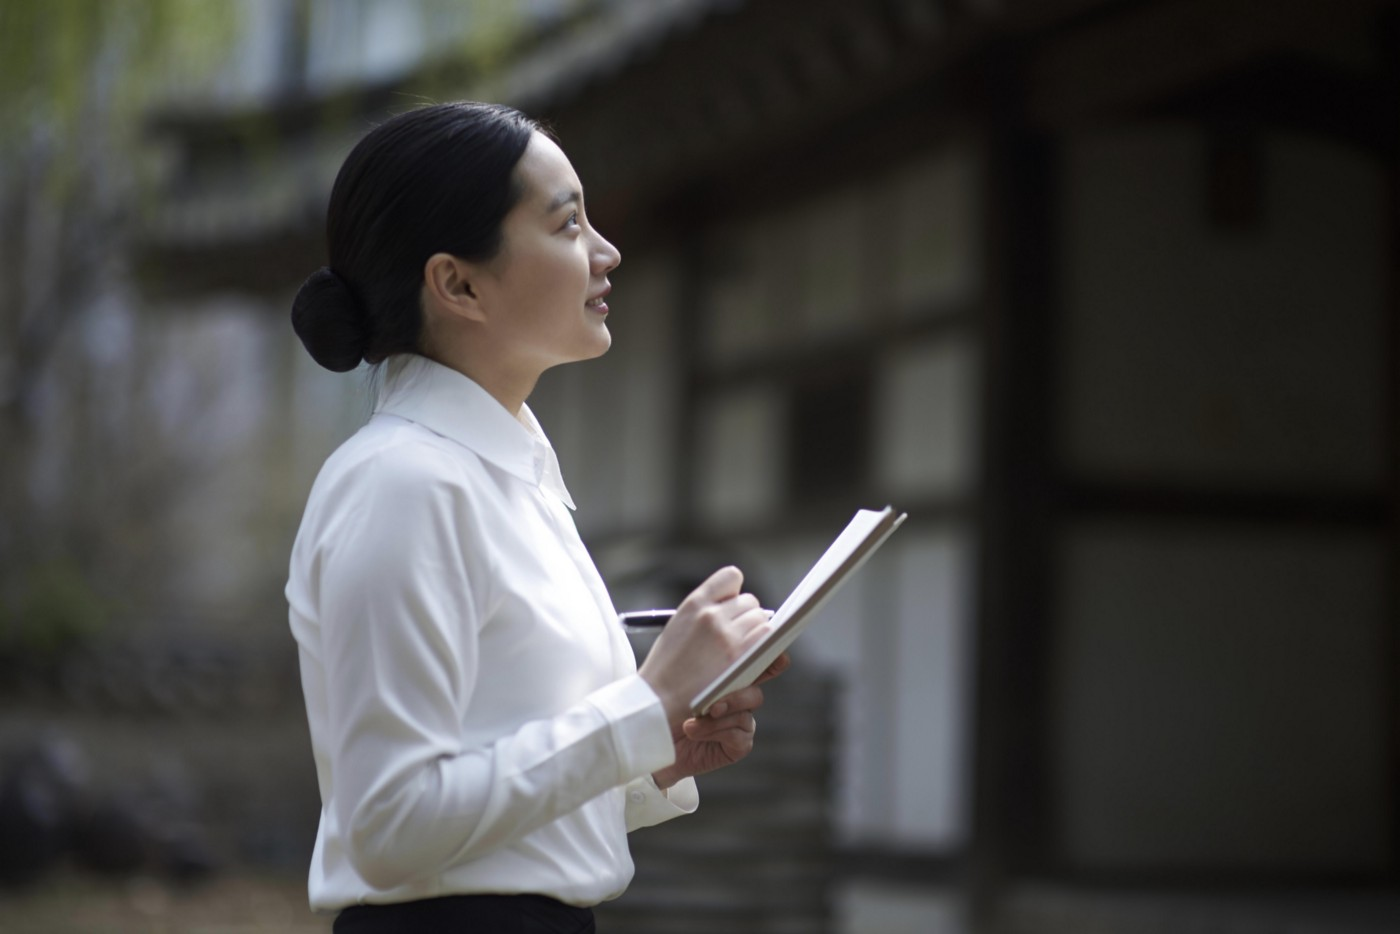 Asian businesswoman taking notes outside while looking at a building.